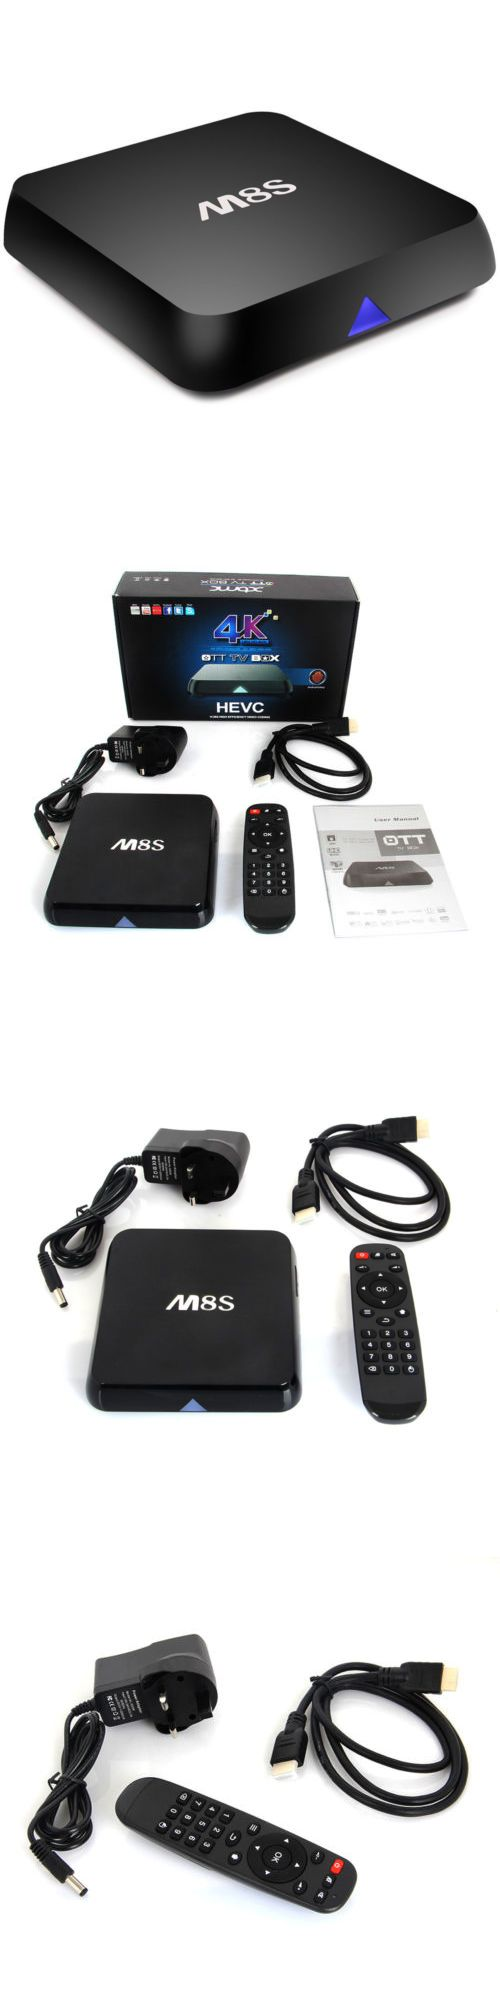 Cable TV Boxes: M8s 4K 2Gb 8Gb Quad Core Android 4.4 Smart Wifi+Bt Tv Box Fully Loaded Mini Pc BUY IT NOW ONLY: $45.99